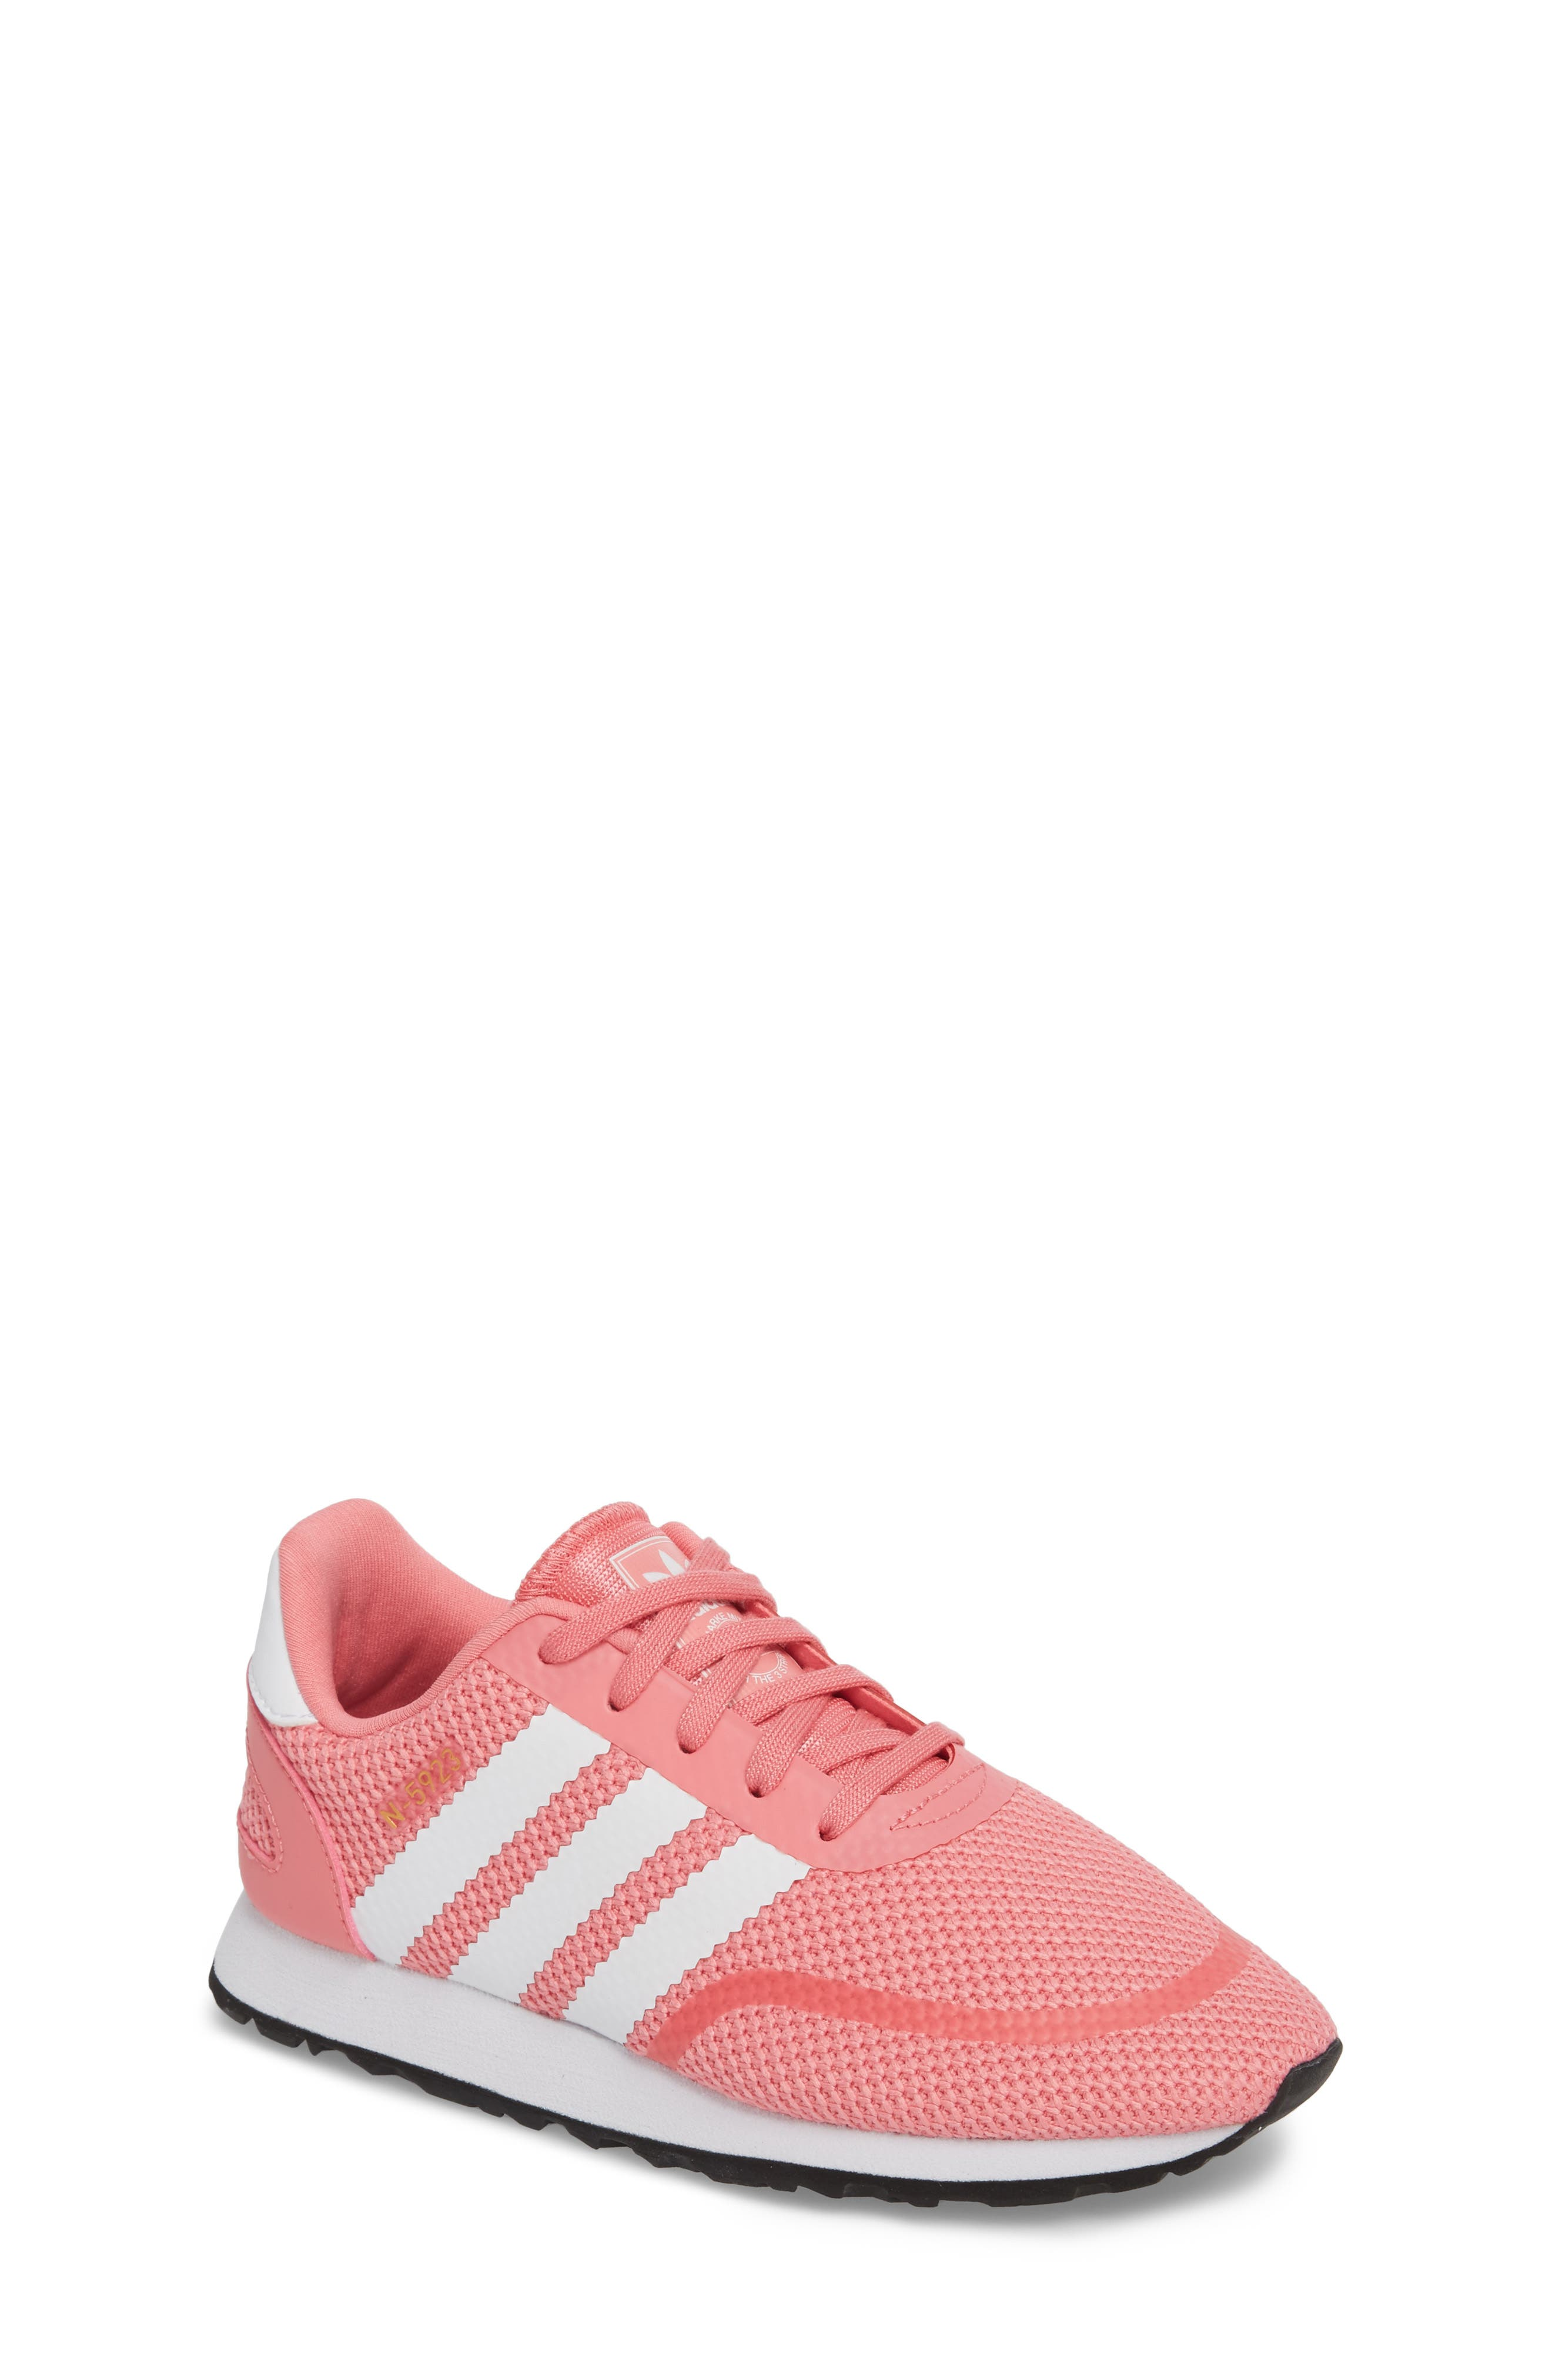 N-5923 Sneaker,                         Main,                         color, Chalk Pink / White / White